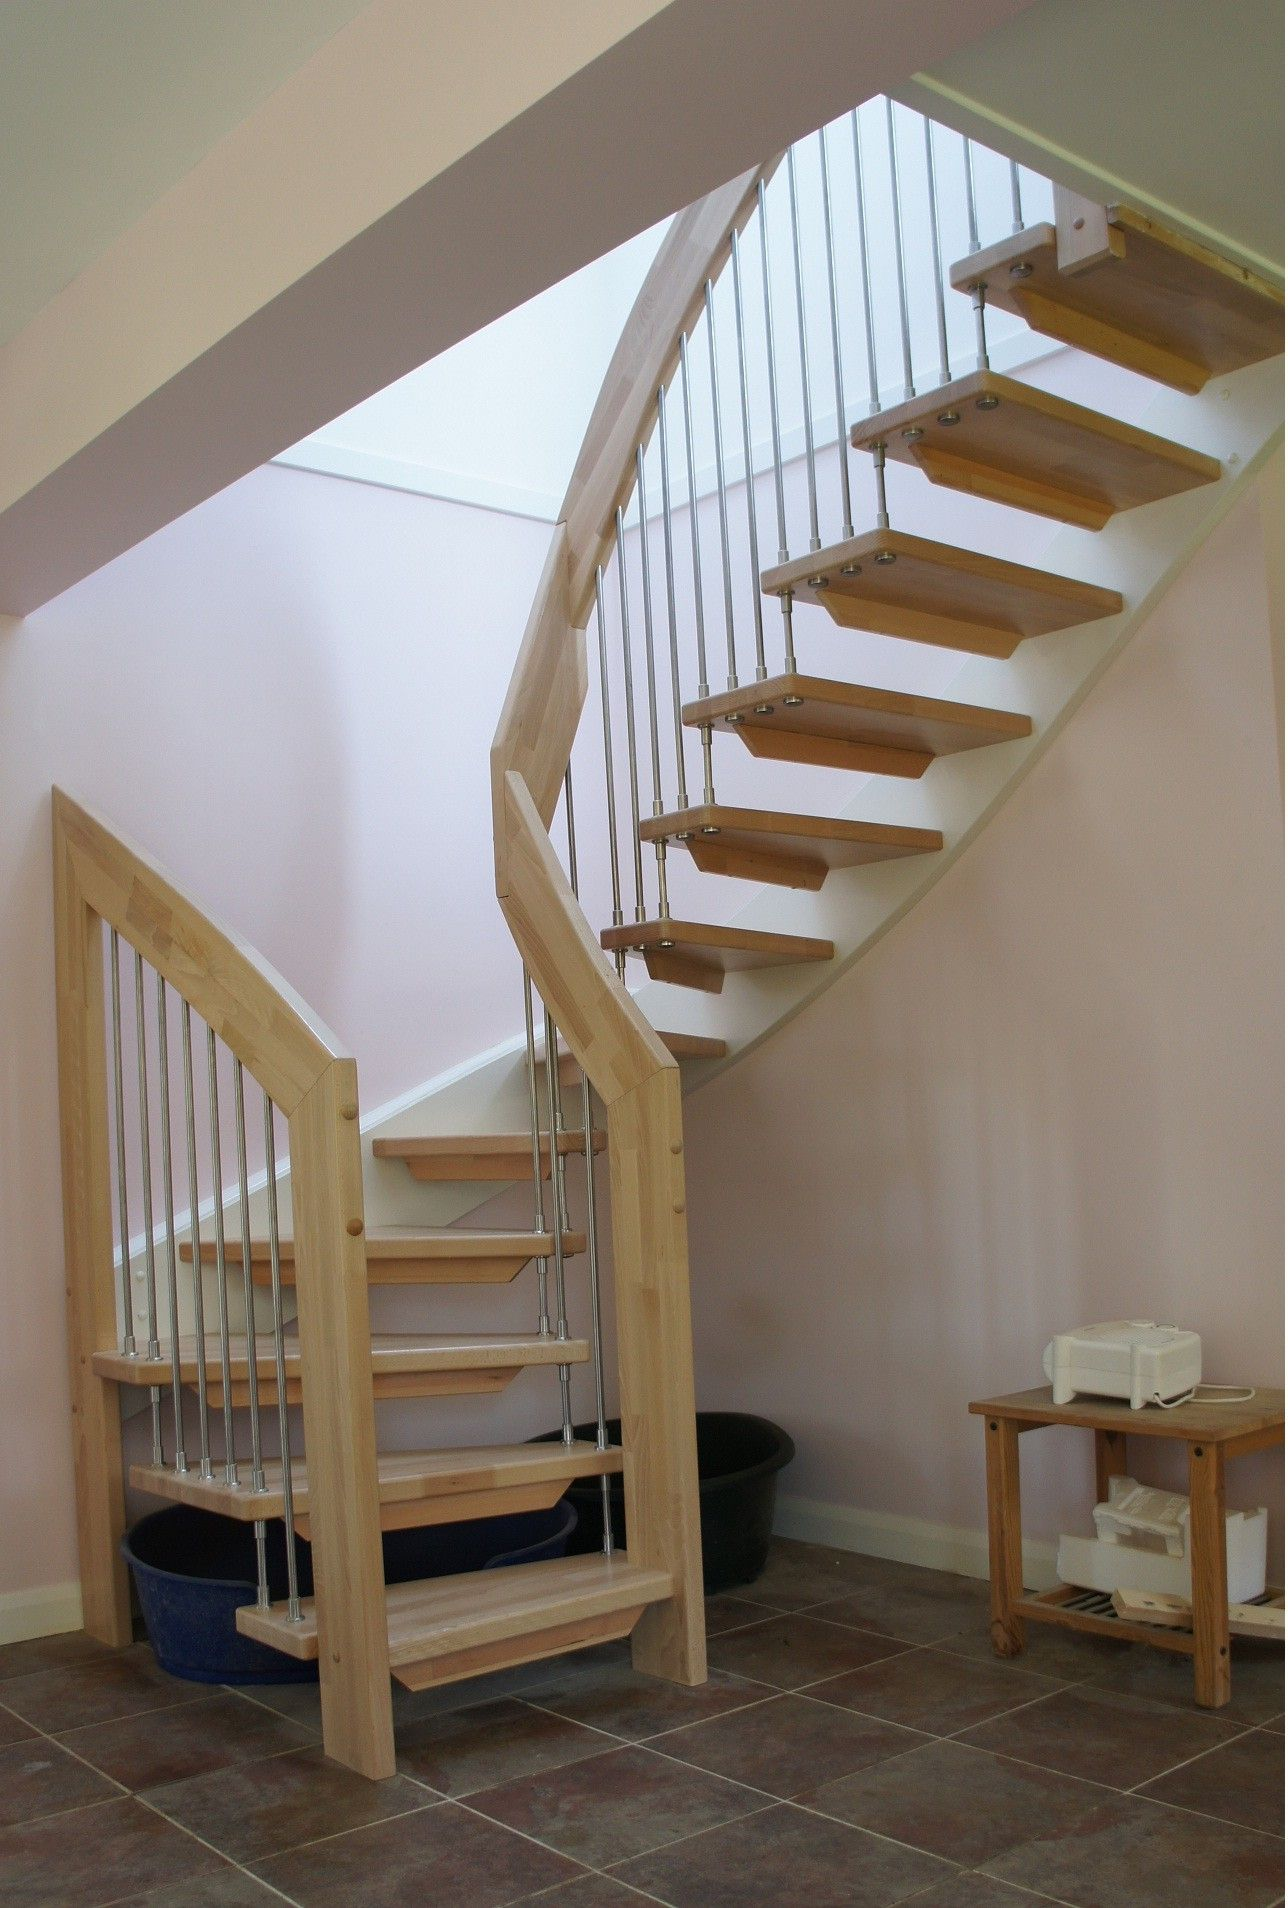 Staircase Designs For Small Spaces Simple Design Ideas Of Small Space Staircase With Brown